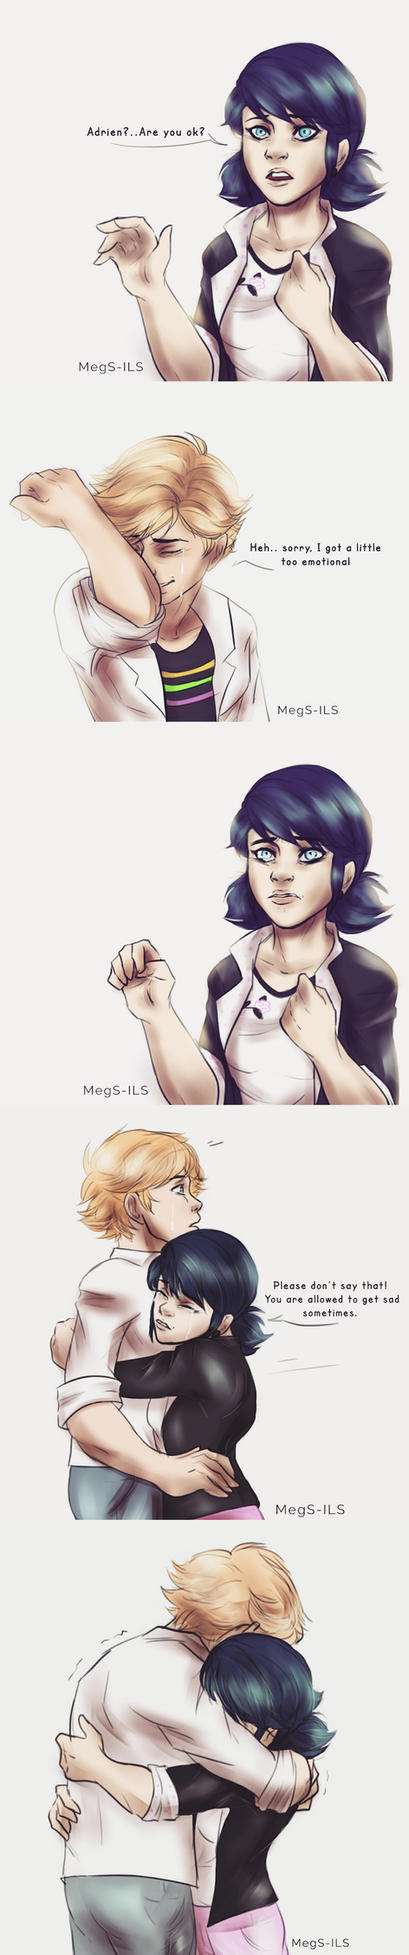 Emotional by MegS-ILS